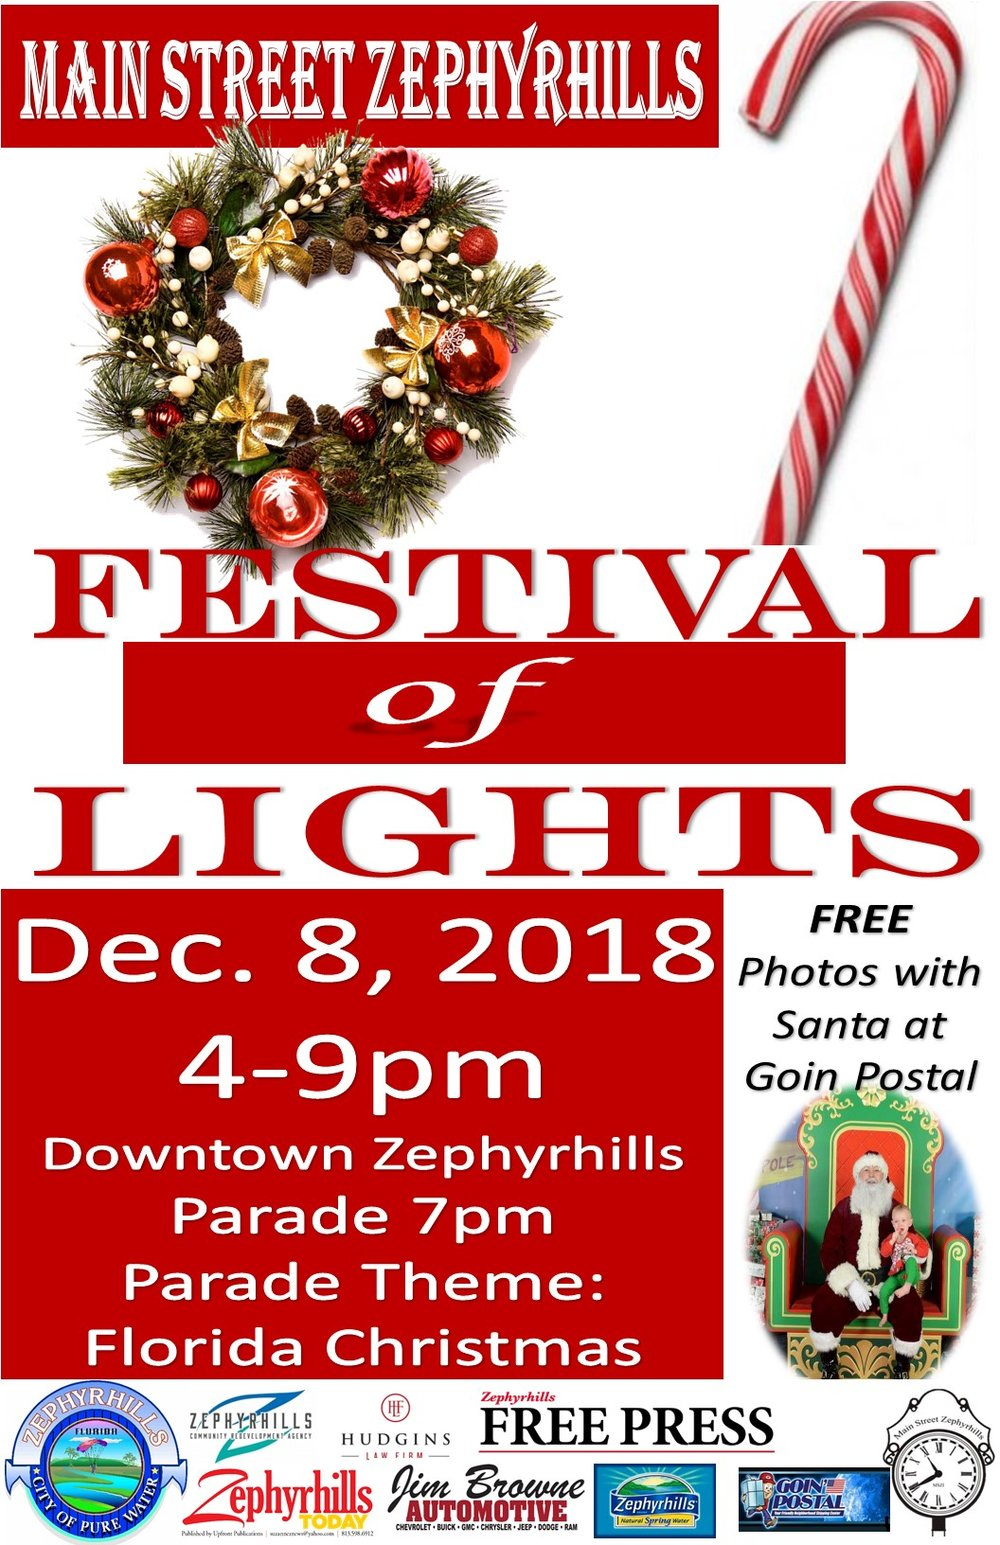 Festival of Lights flyer 2018.jpg